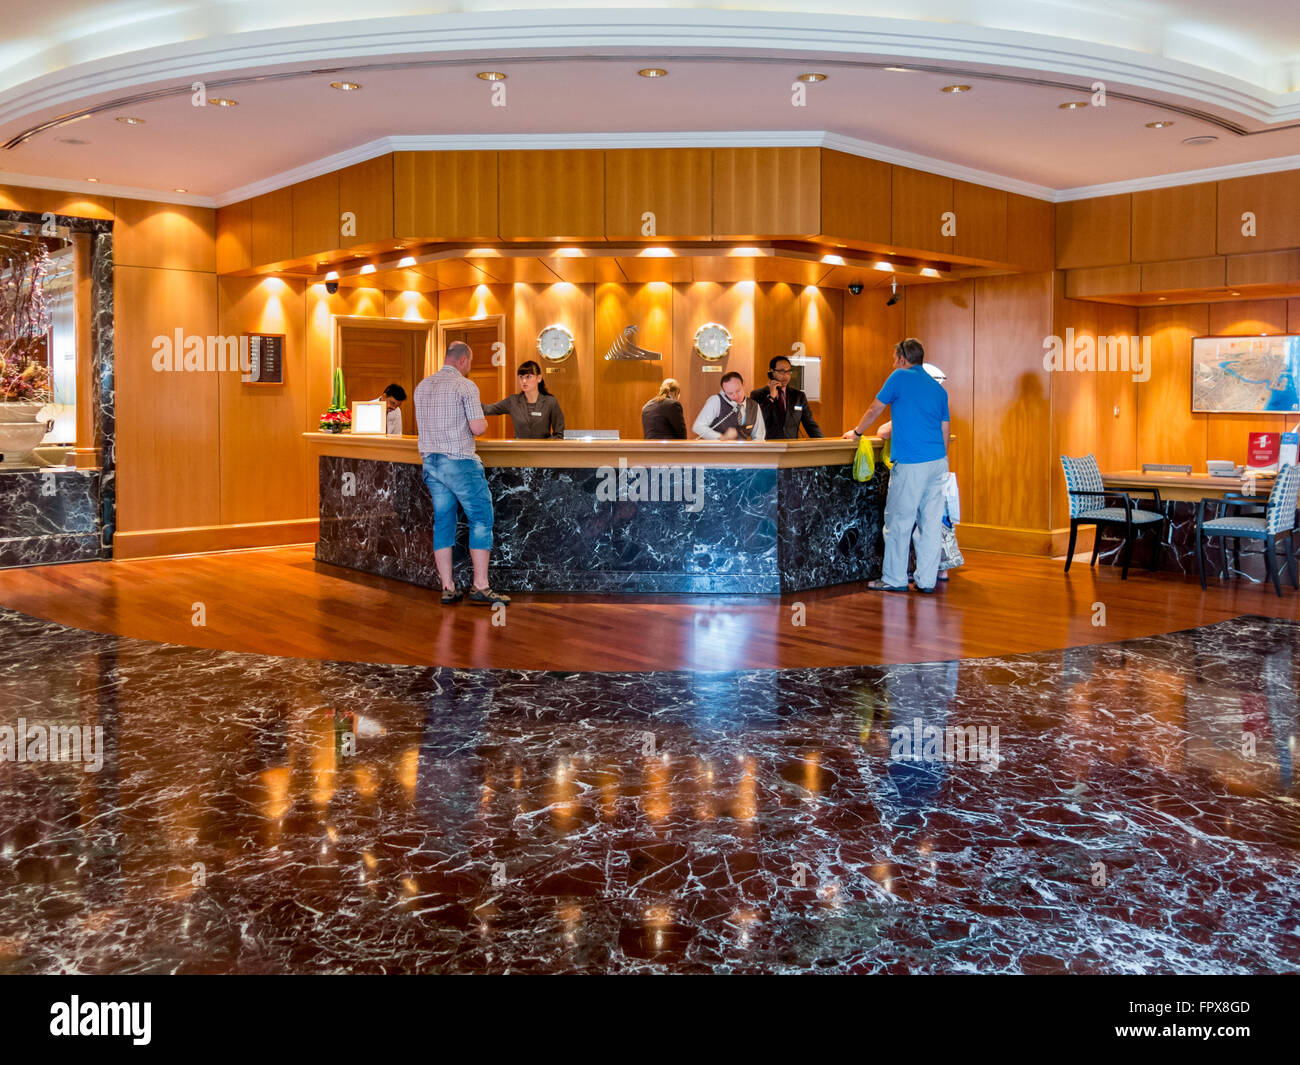 Receptionists and guests at reception desk in hotel beach resort in Dubai, United Arab Emirates - Stock Image